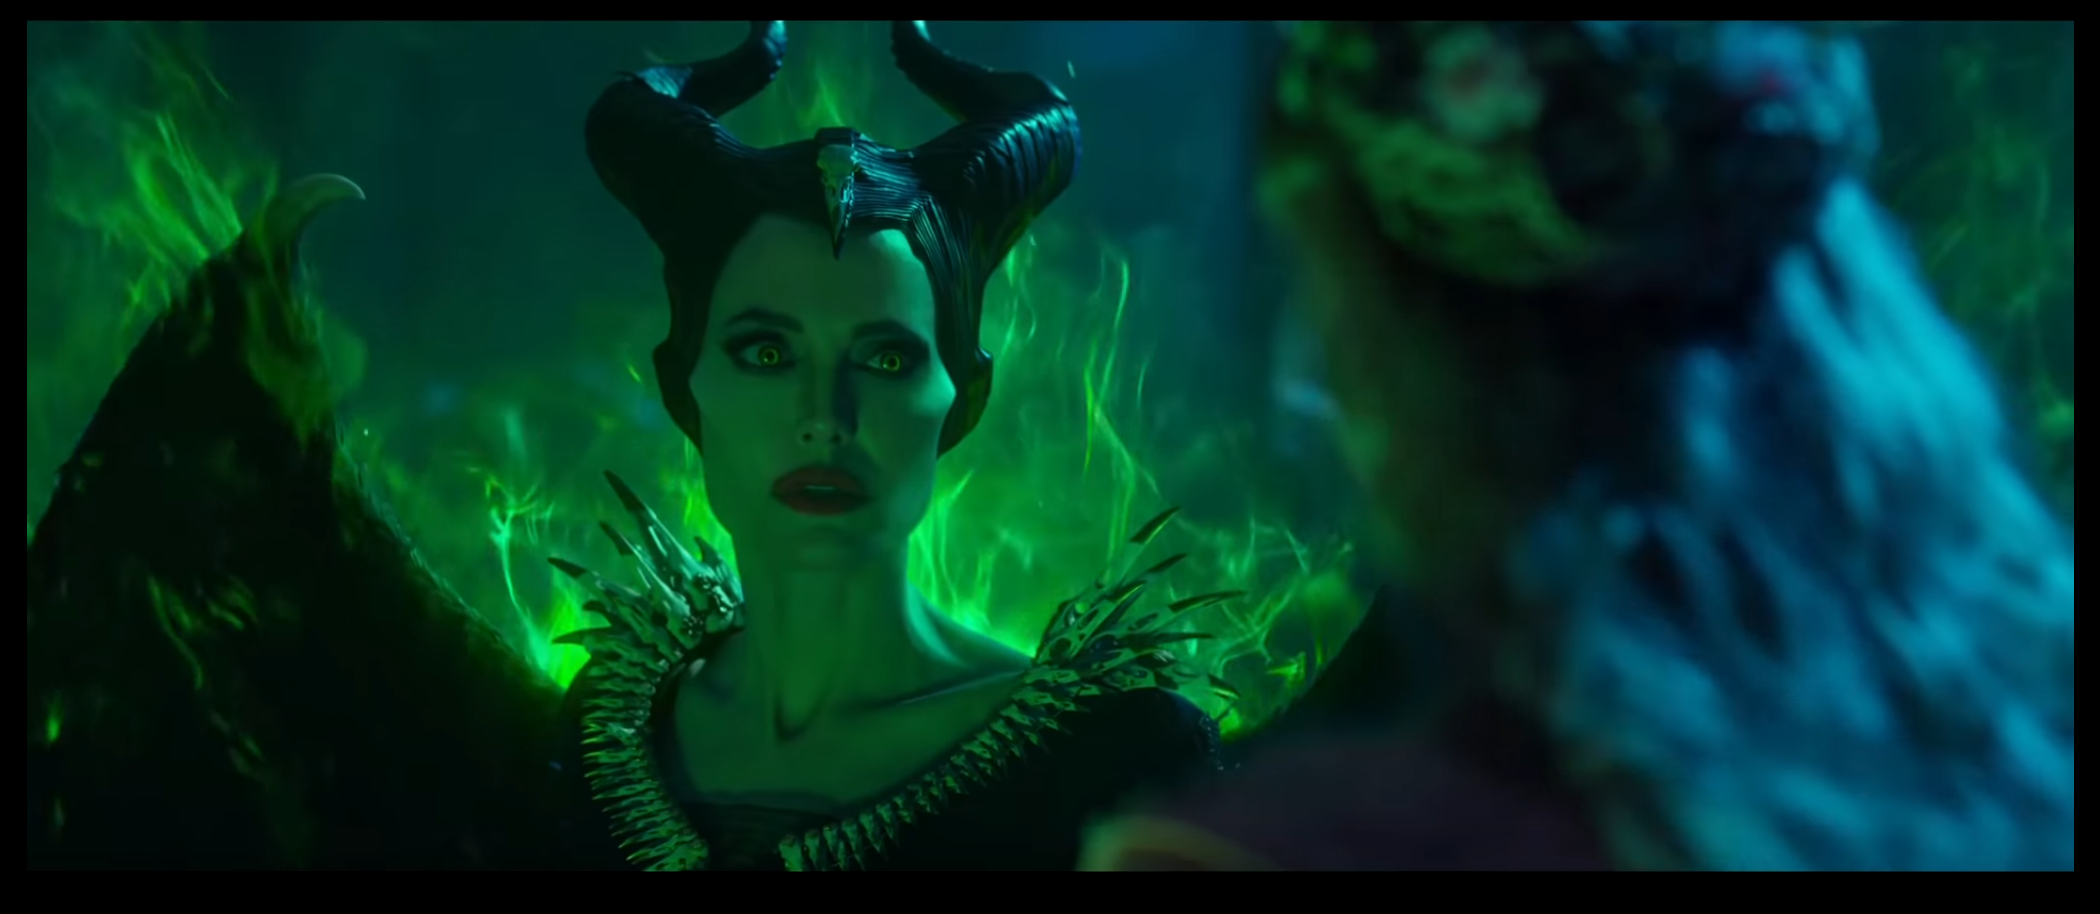 Maleficent Mistress Of Evil Let S Go Sussex